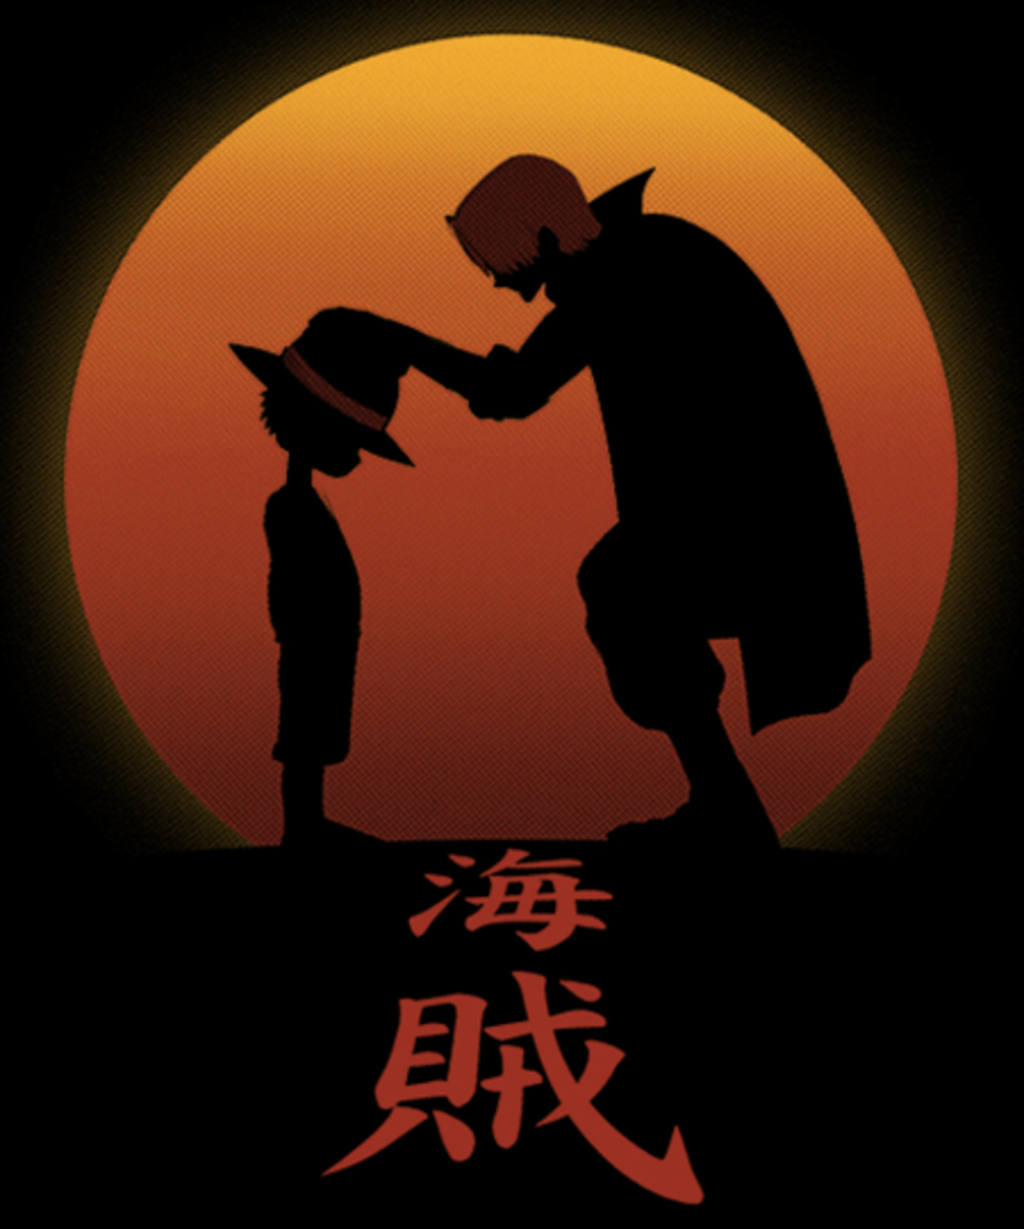 Qwertee: I will be the pirate king